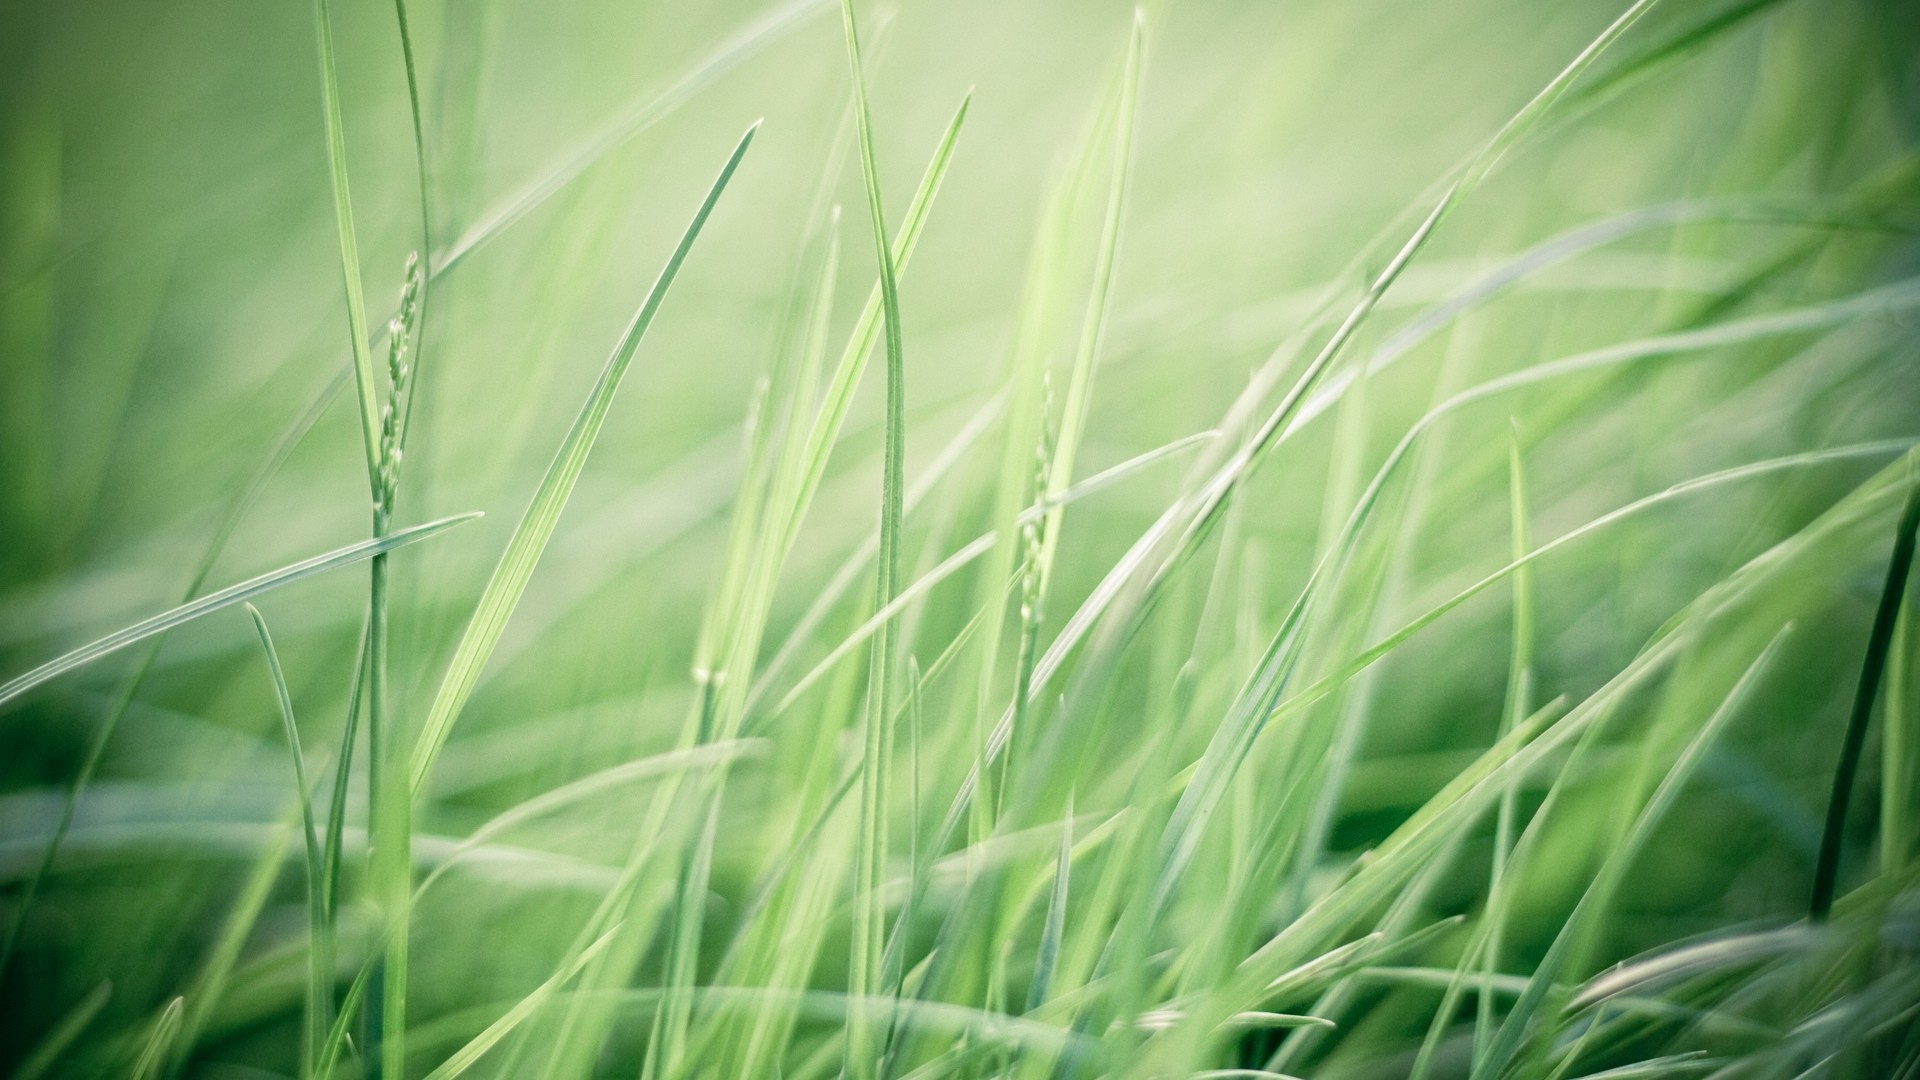 Seagrass hd wallpaper download